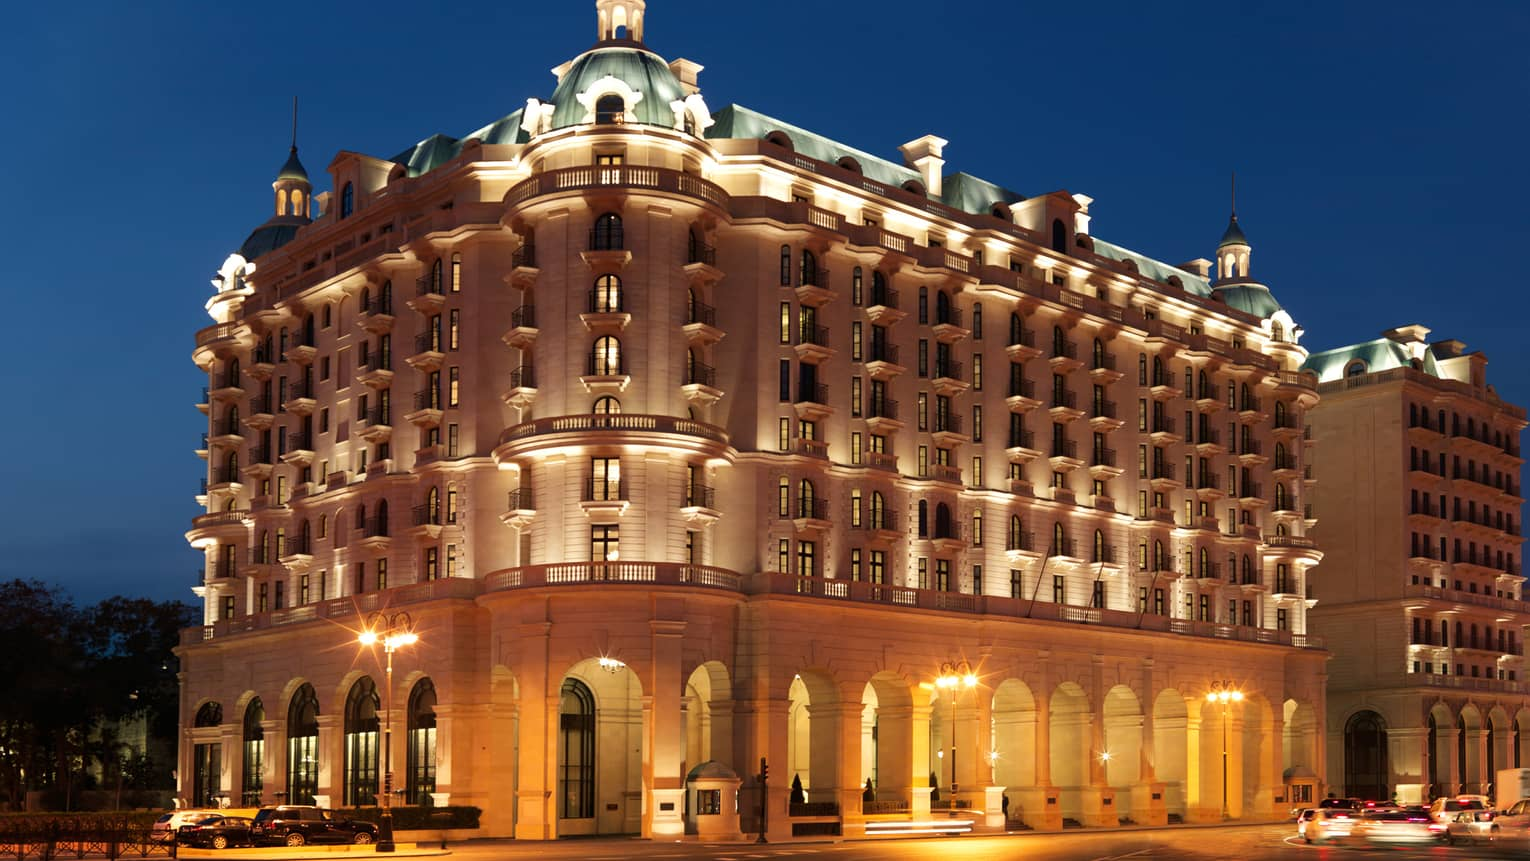 Night view of Baku Four Seasons Hotel Beaux-Arts-style building exterior with lights, illuminated roof